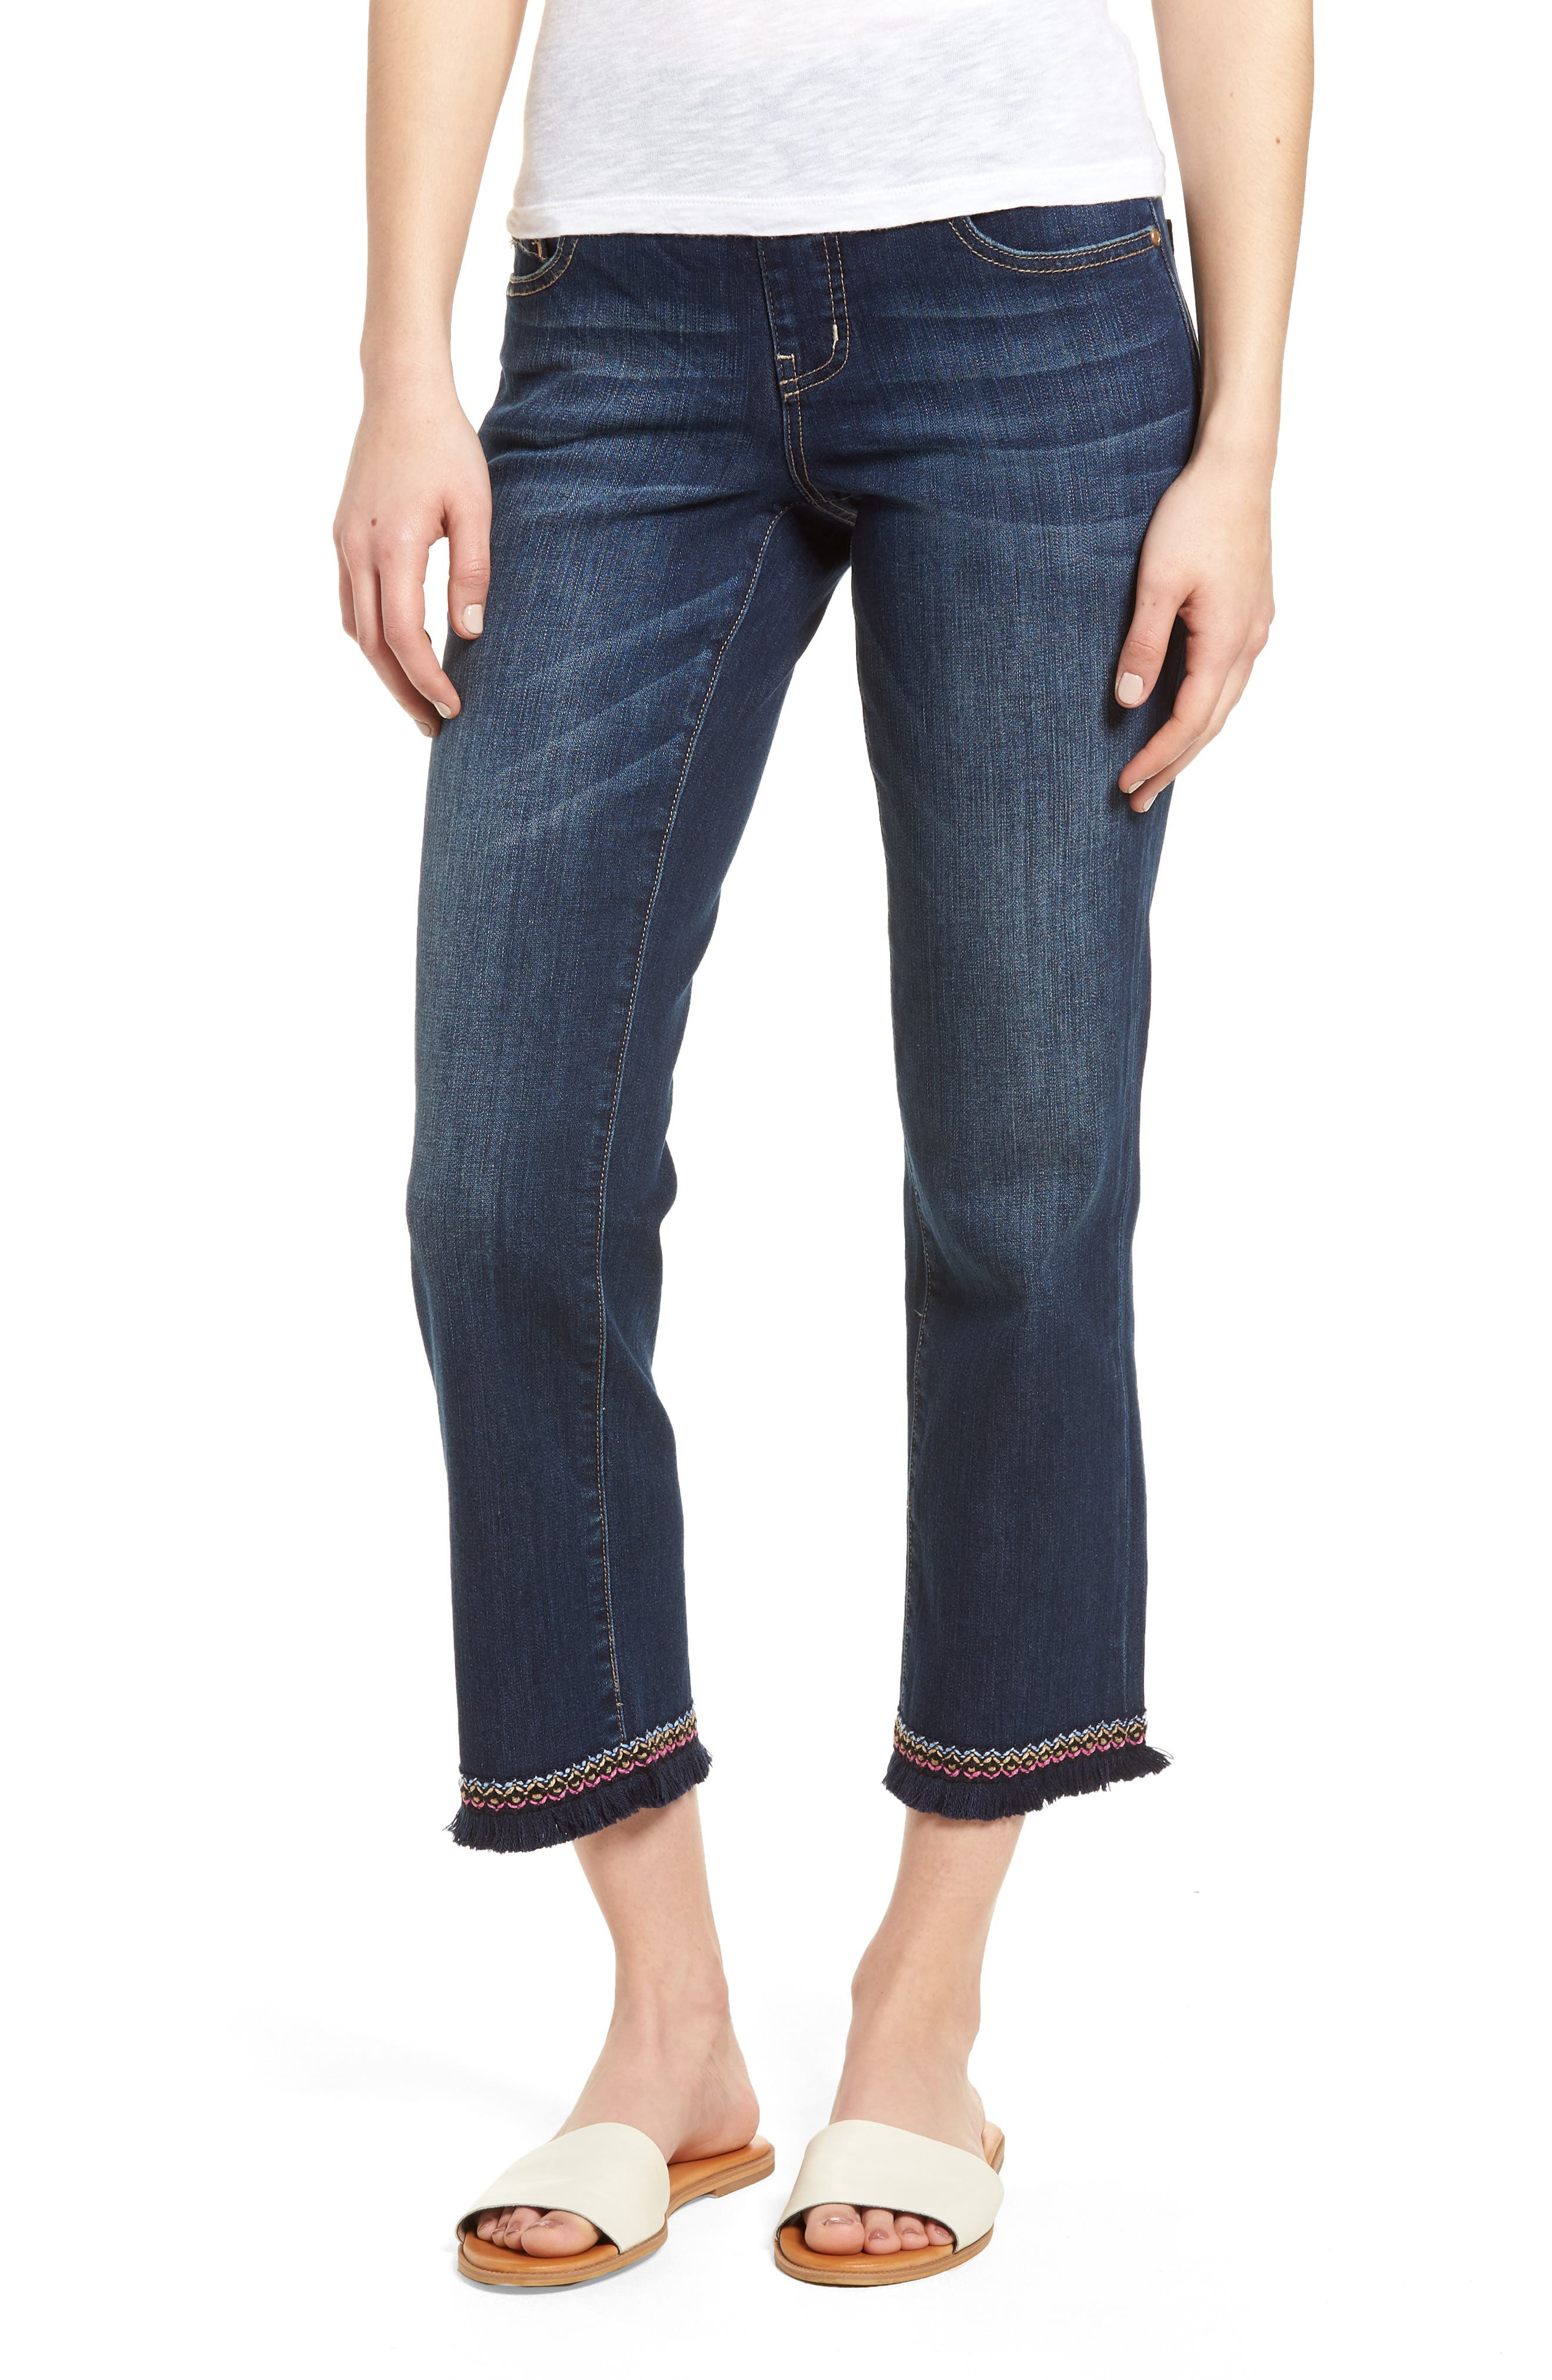 Peri Embroidery Fringe Jeans,                             Main thumbnail 1, color,                             420